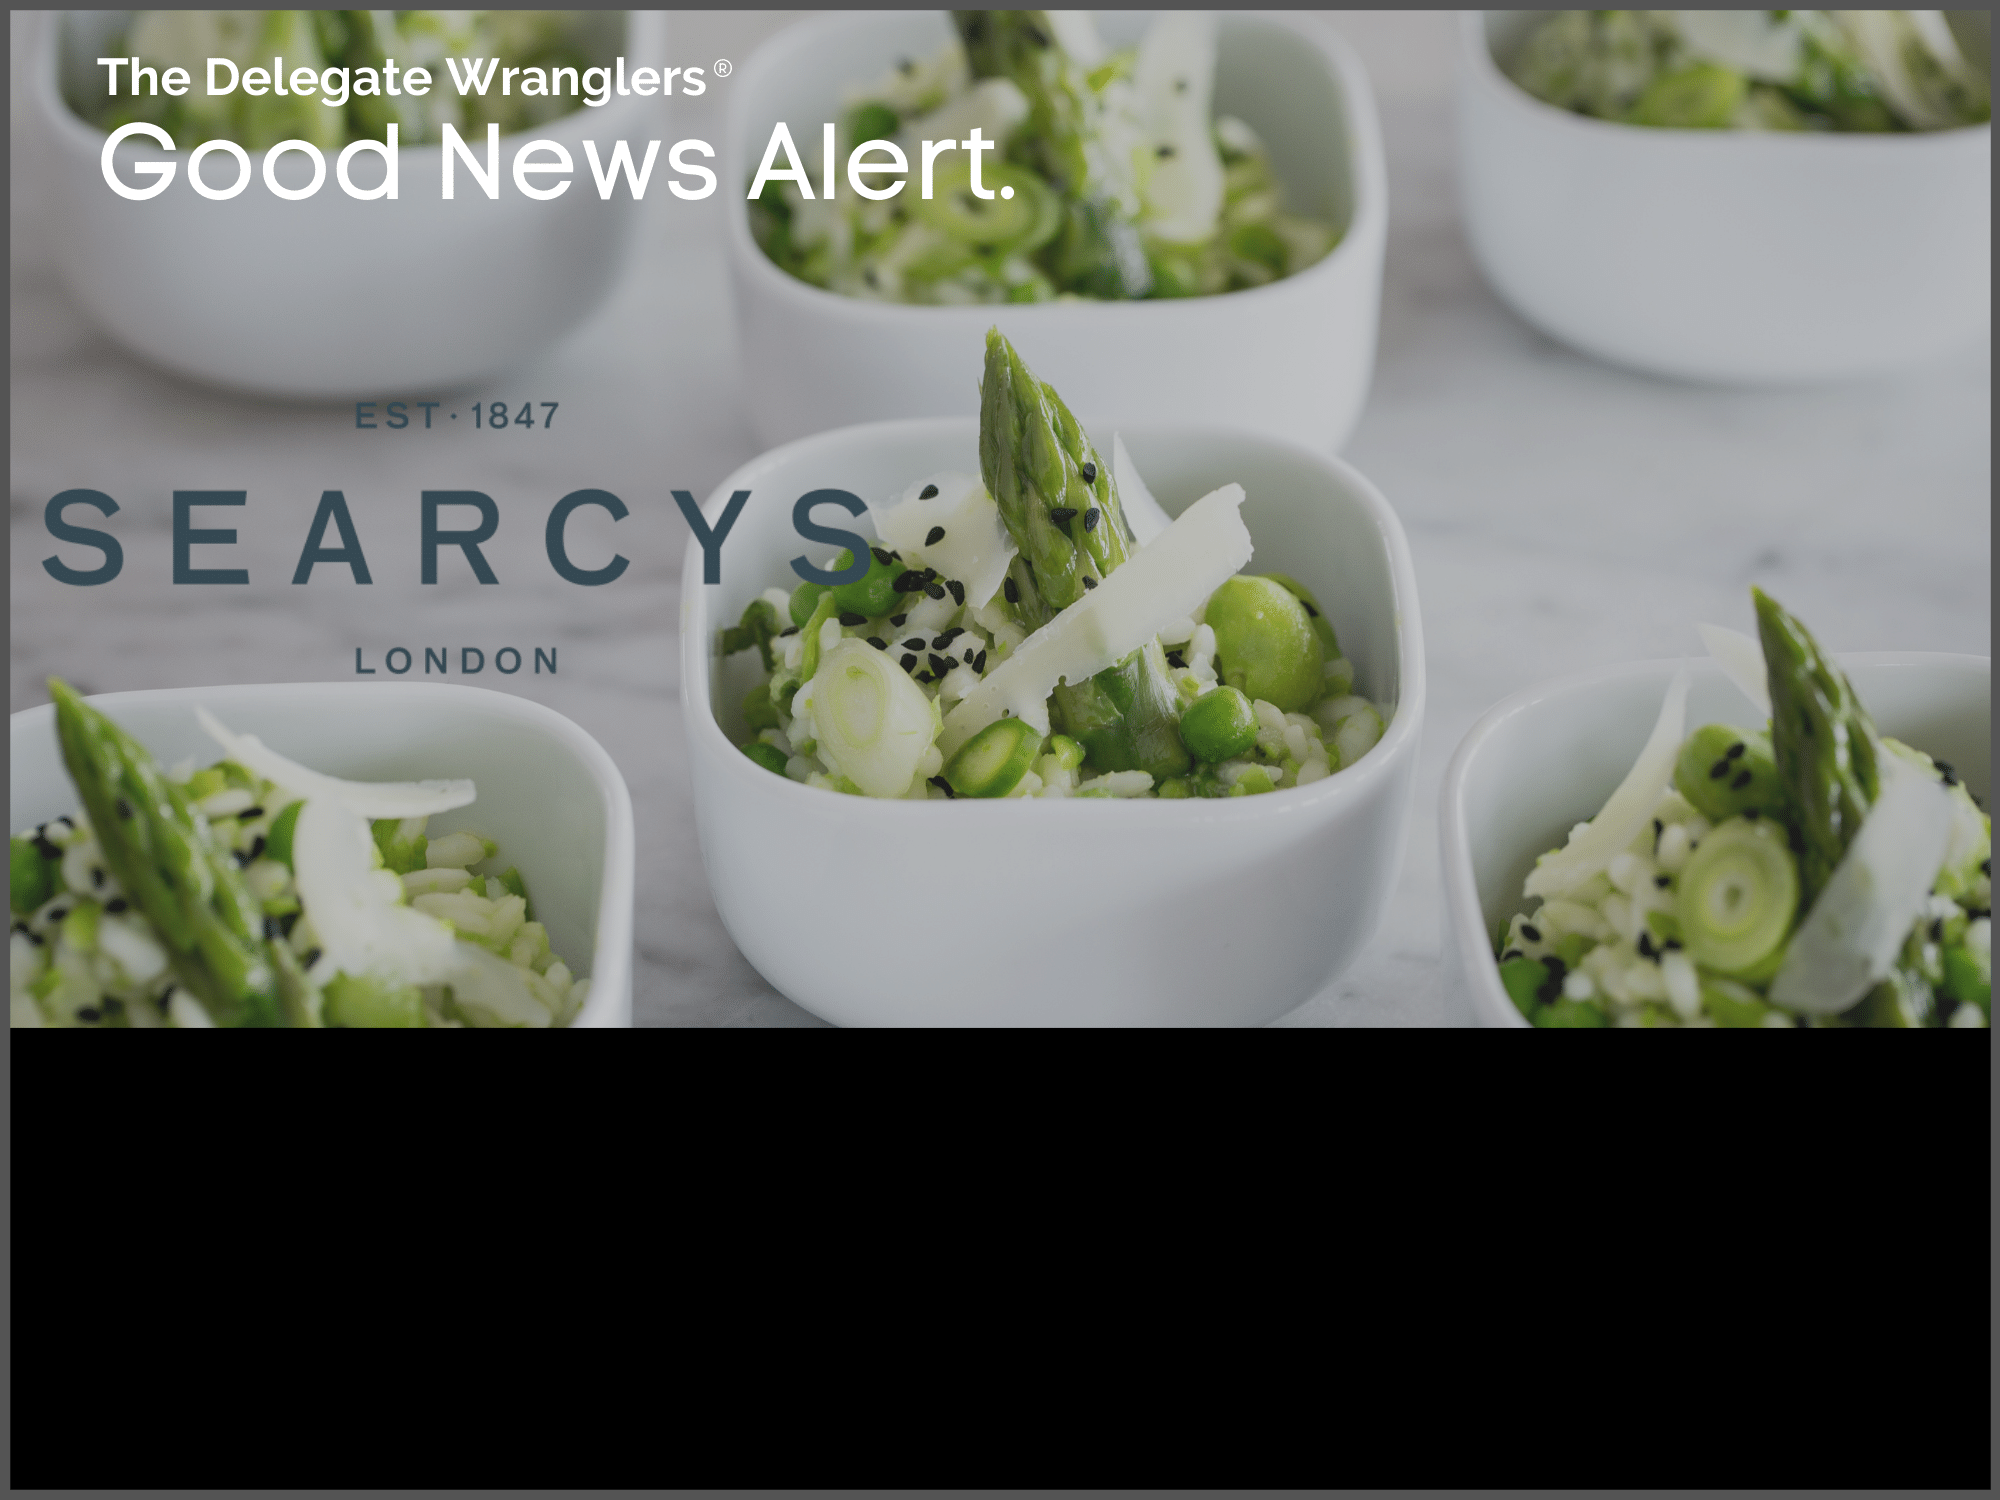 Searcys venues are open for business of events